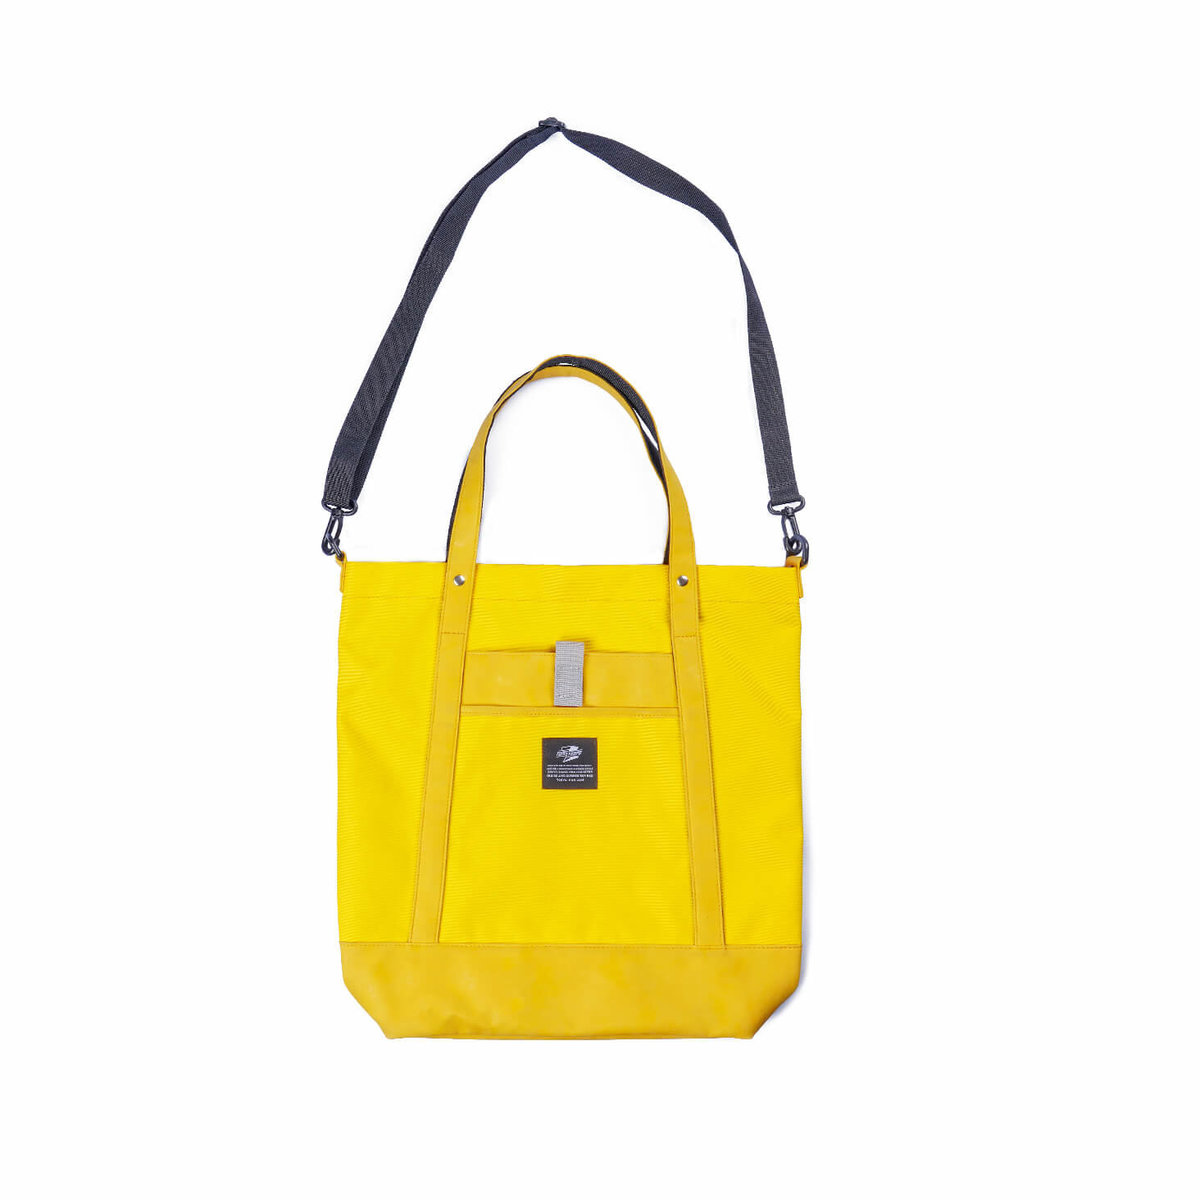 Tunnel Tempo Japanese simple vitality yellow / black portable diagonal DOUBLE-USE bag